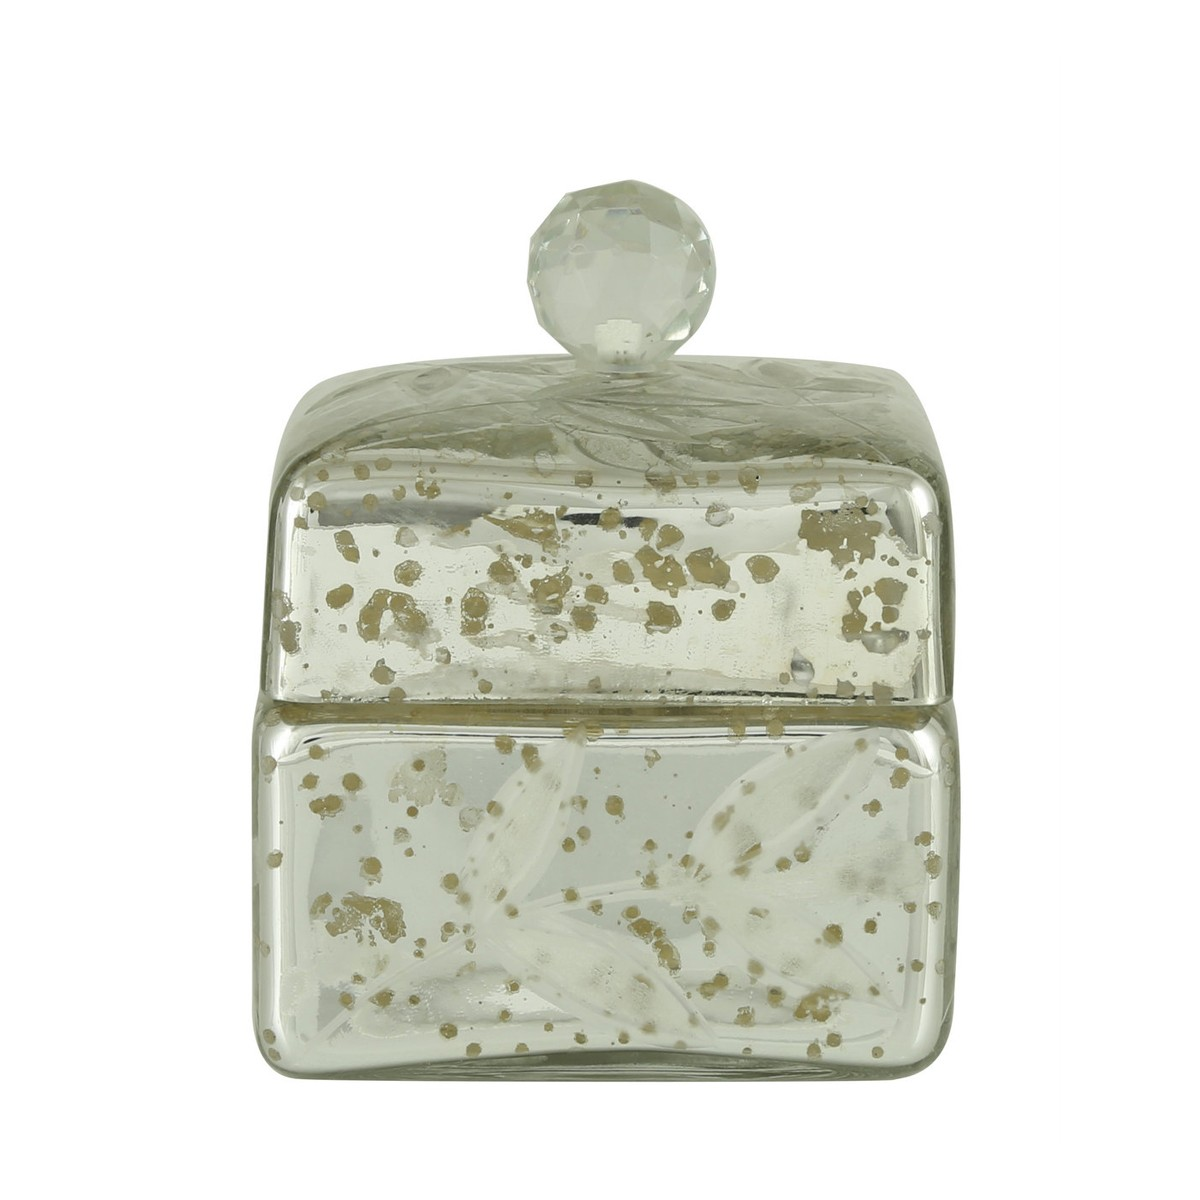 Joyero - Small Silver Square Box with Crystal Glass Knob